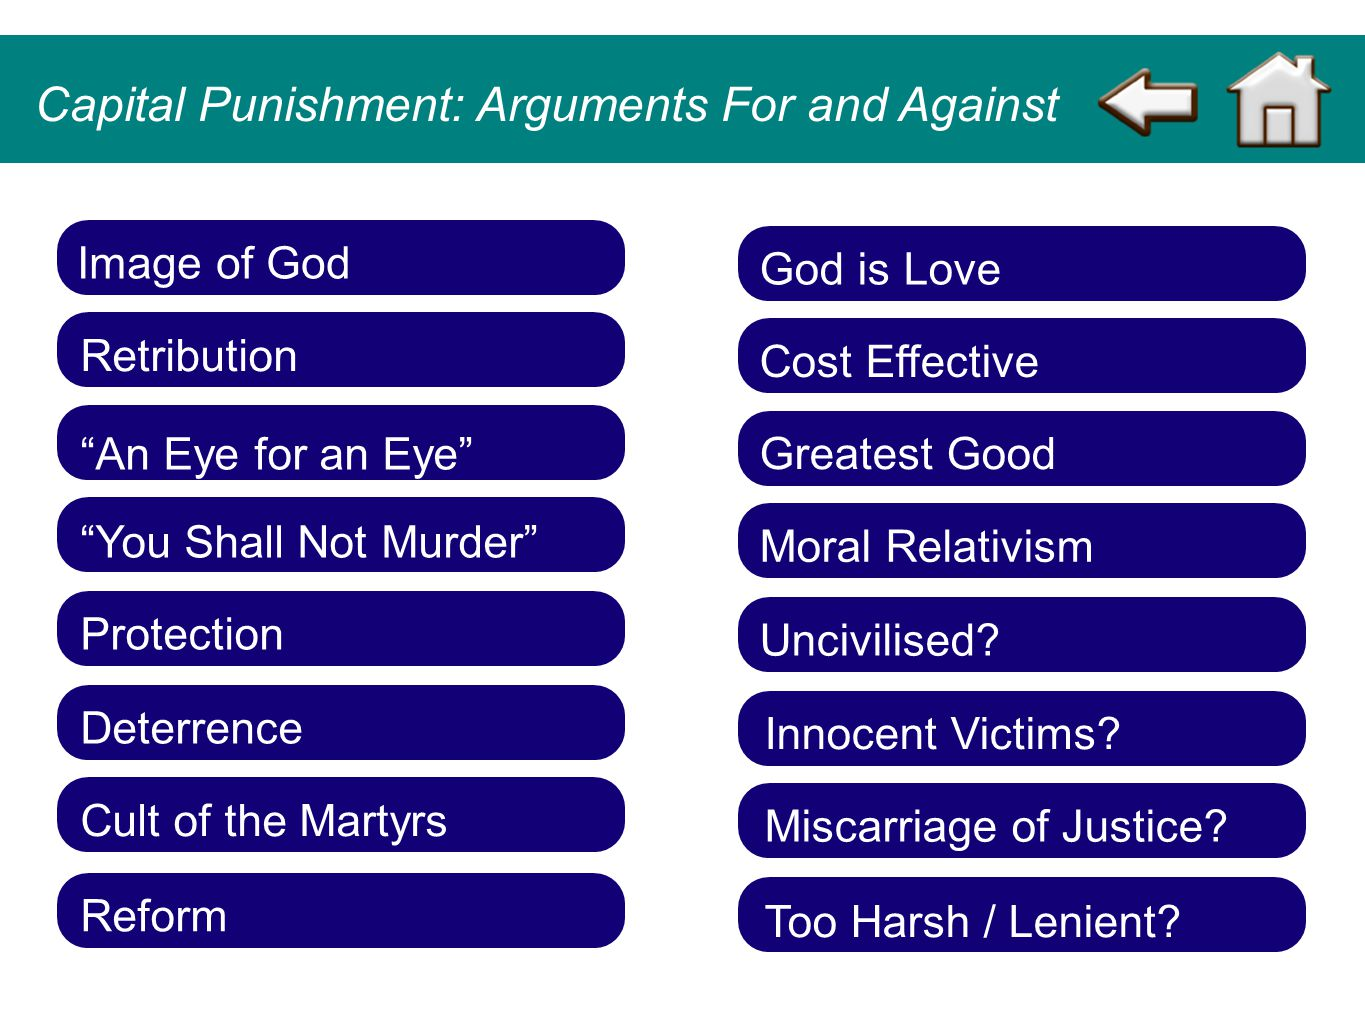 Capital Punishment: Arguments For and Against